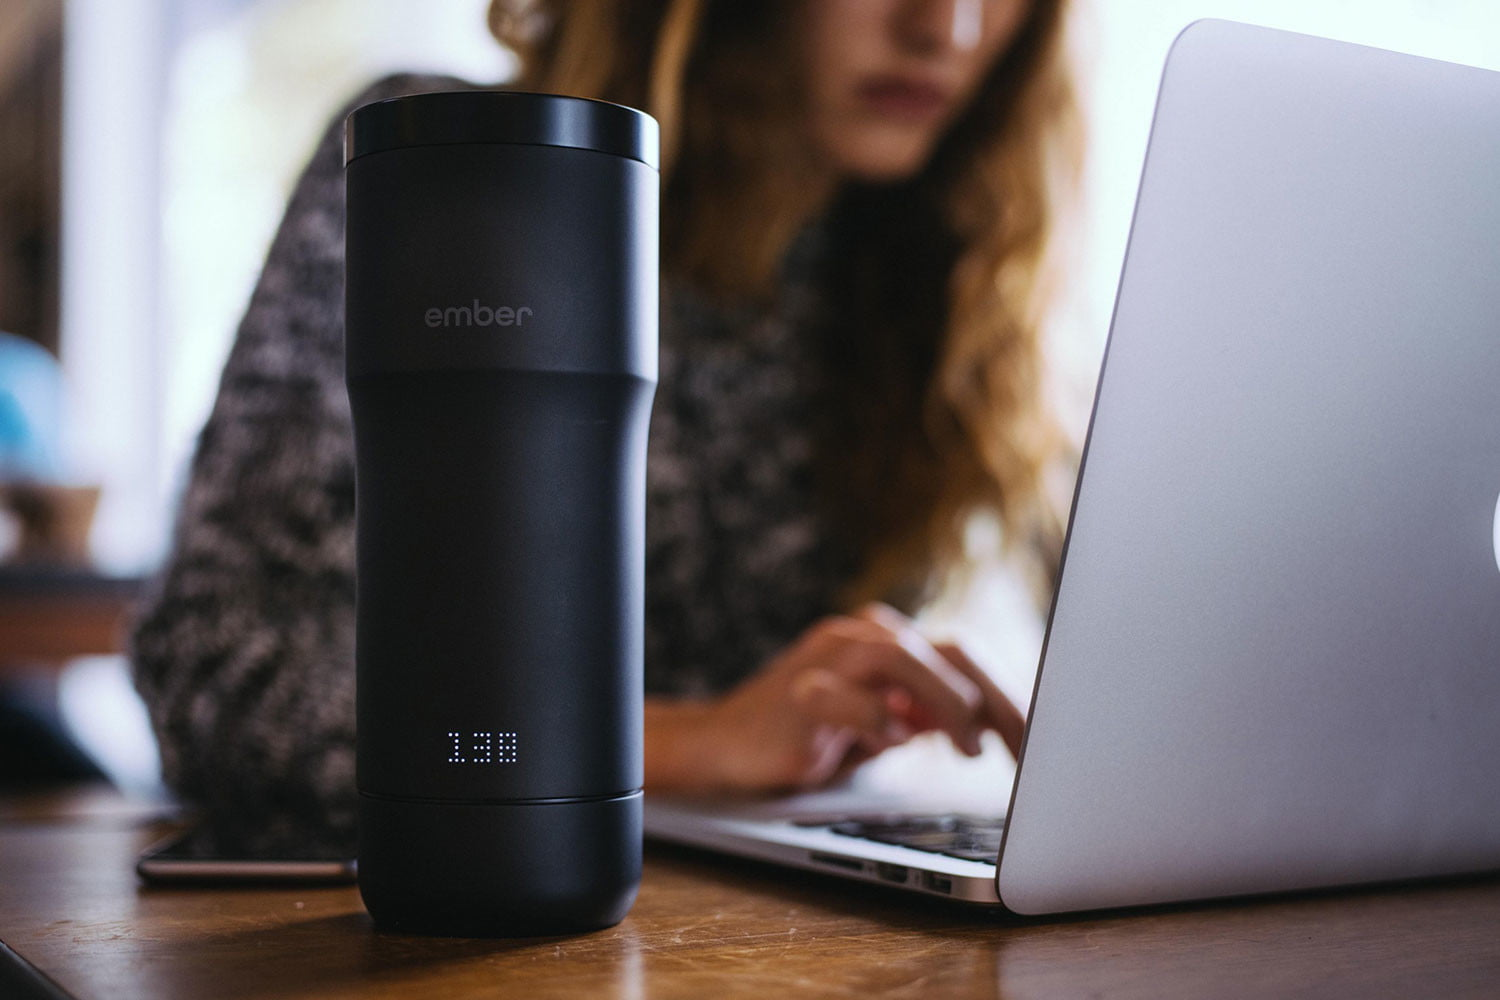 We Tried 3 Smart Mugs to See If They're Worth the Cost | Digital Trends